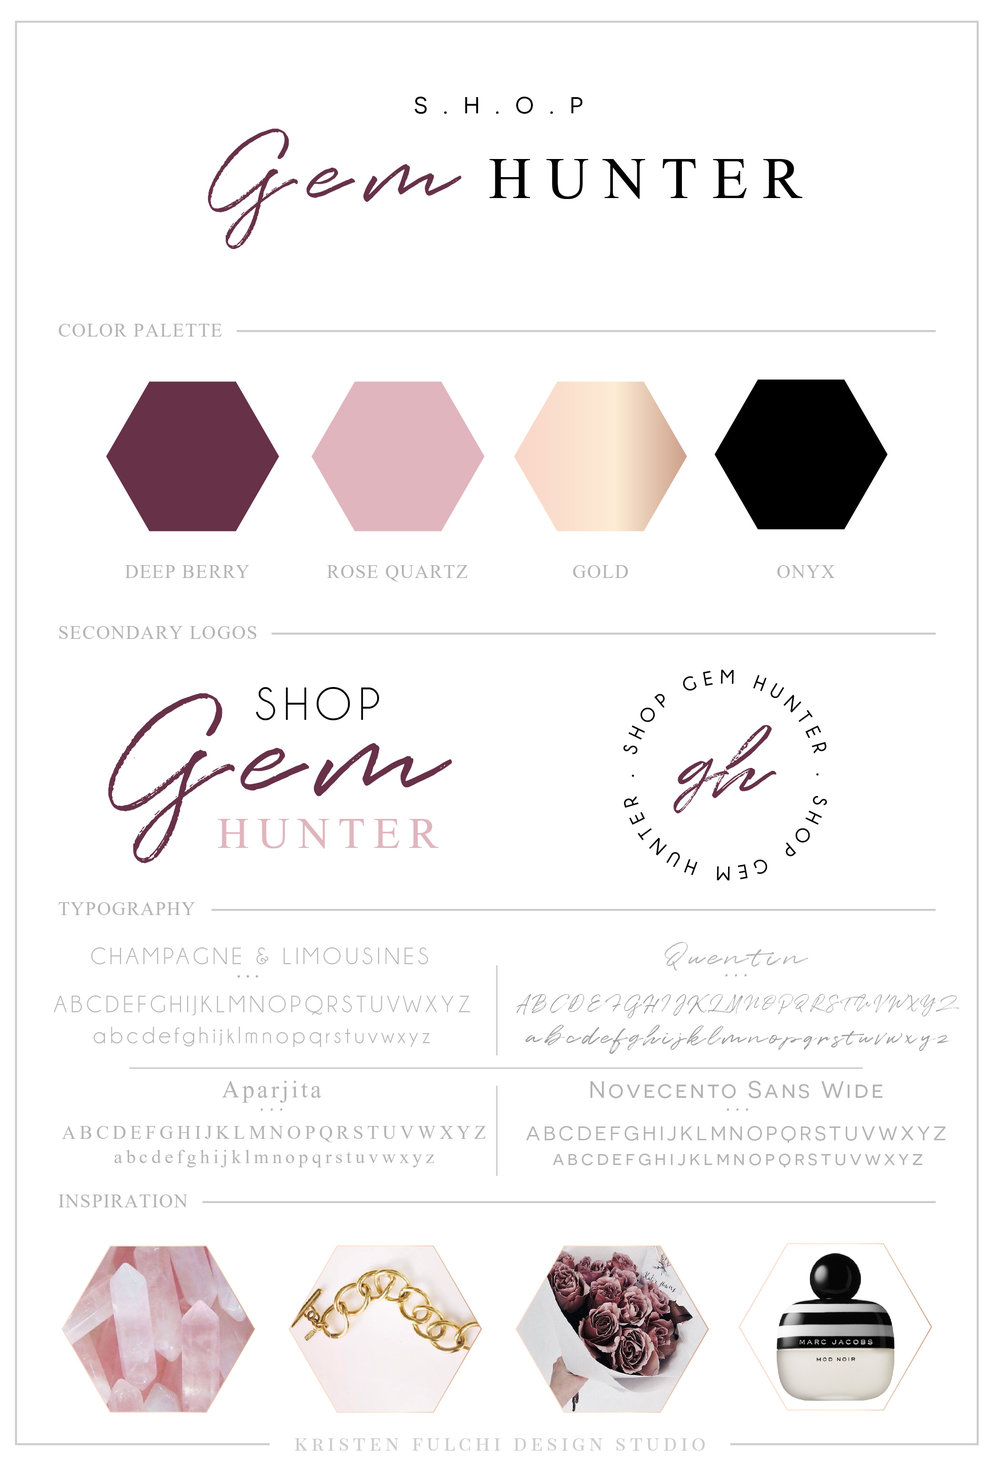 kristen-fulchi-design-studio-branding-for-shop-gem-hunter-thoughtful-design-branding-for-creatives.jpg